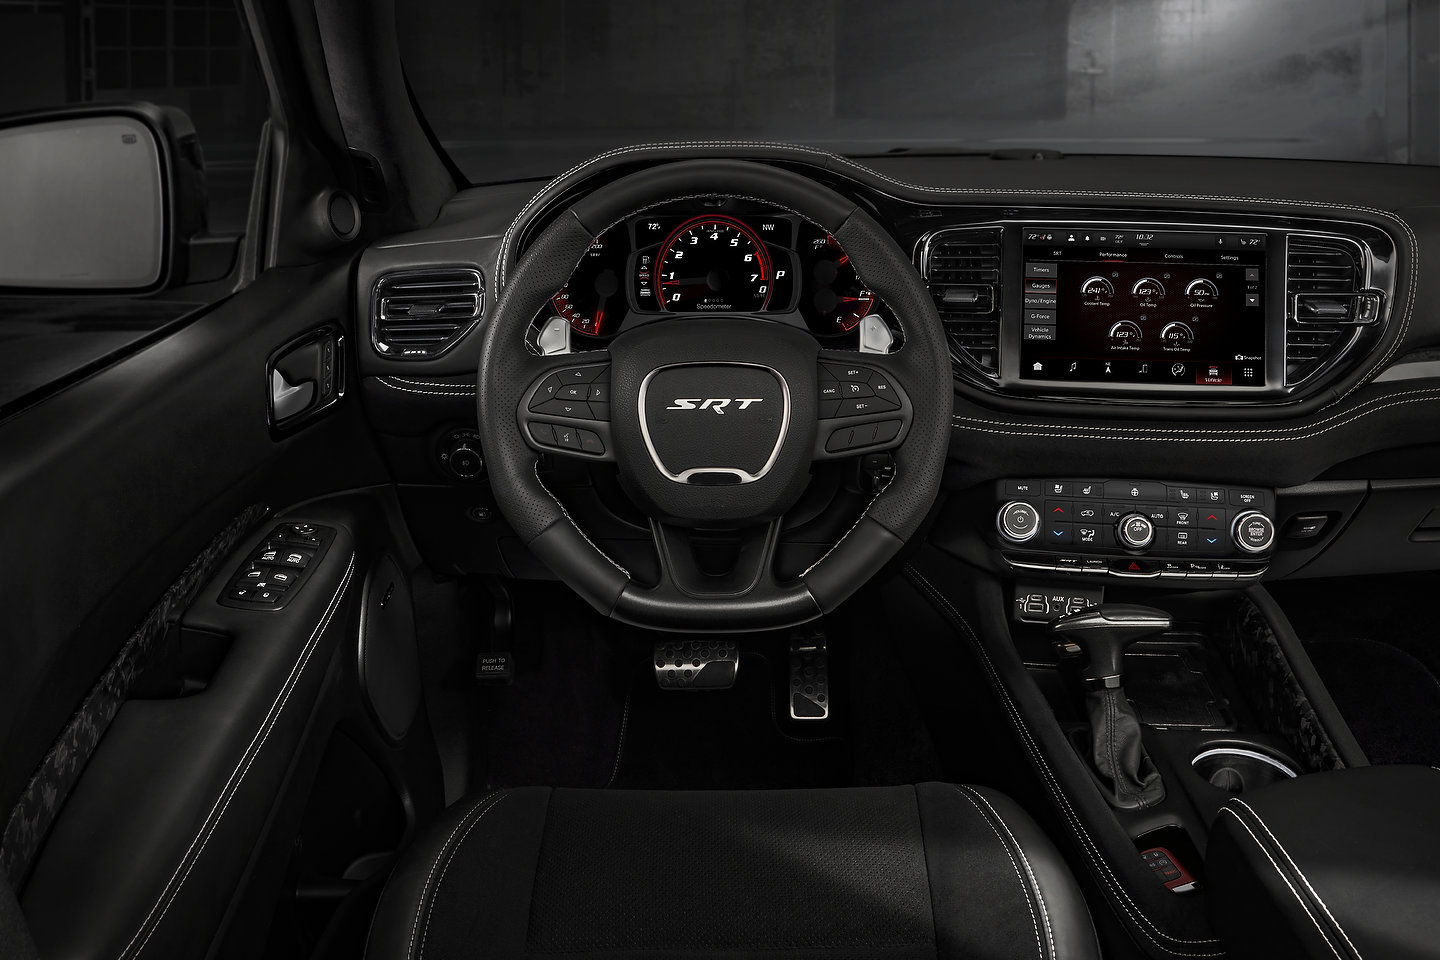 2021 Dodge Durango interior